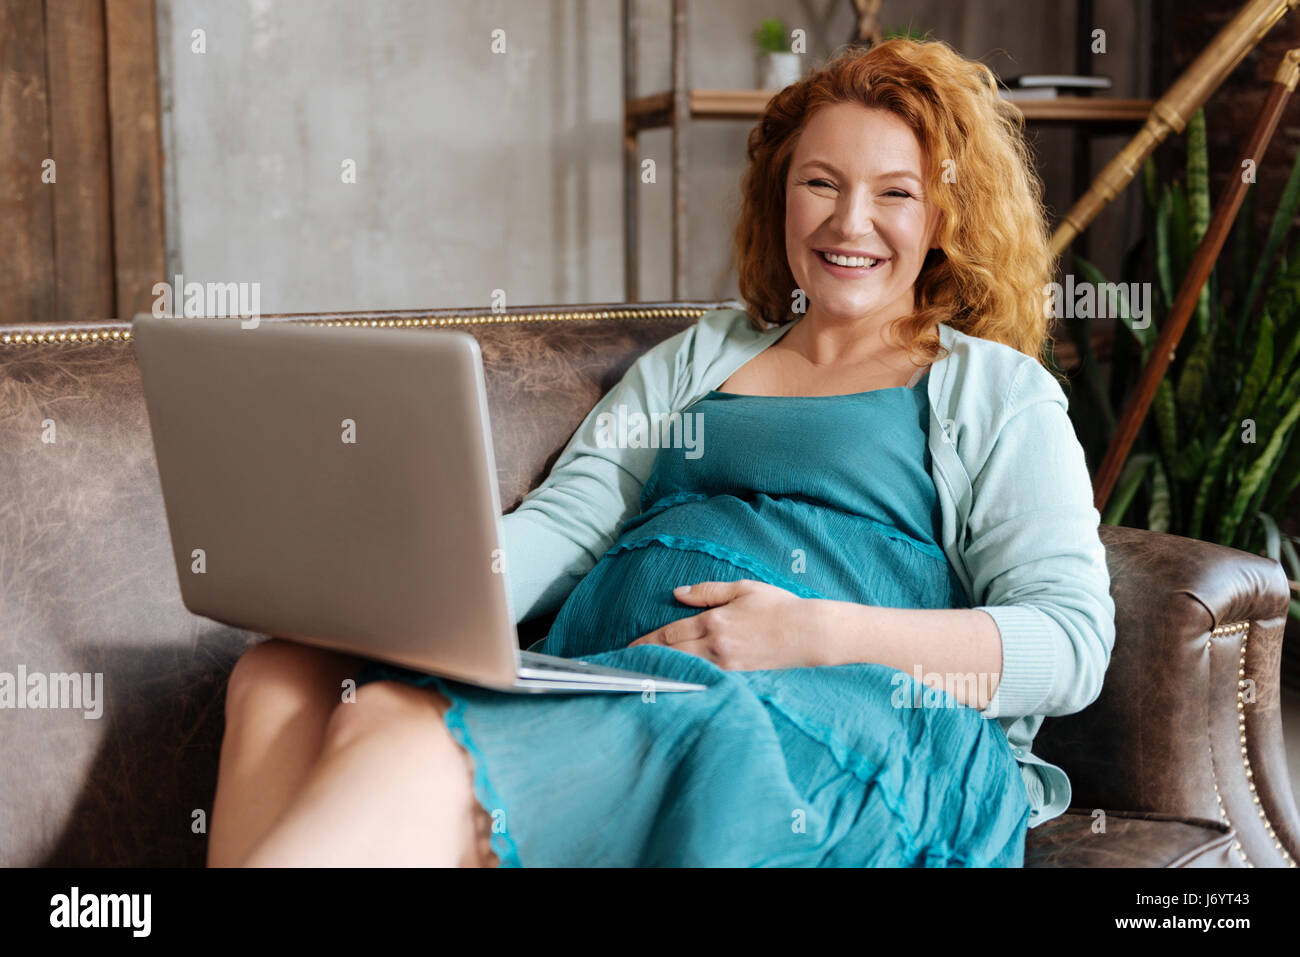 Radiant expectant mother working on laptop on sofa - Stock Image